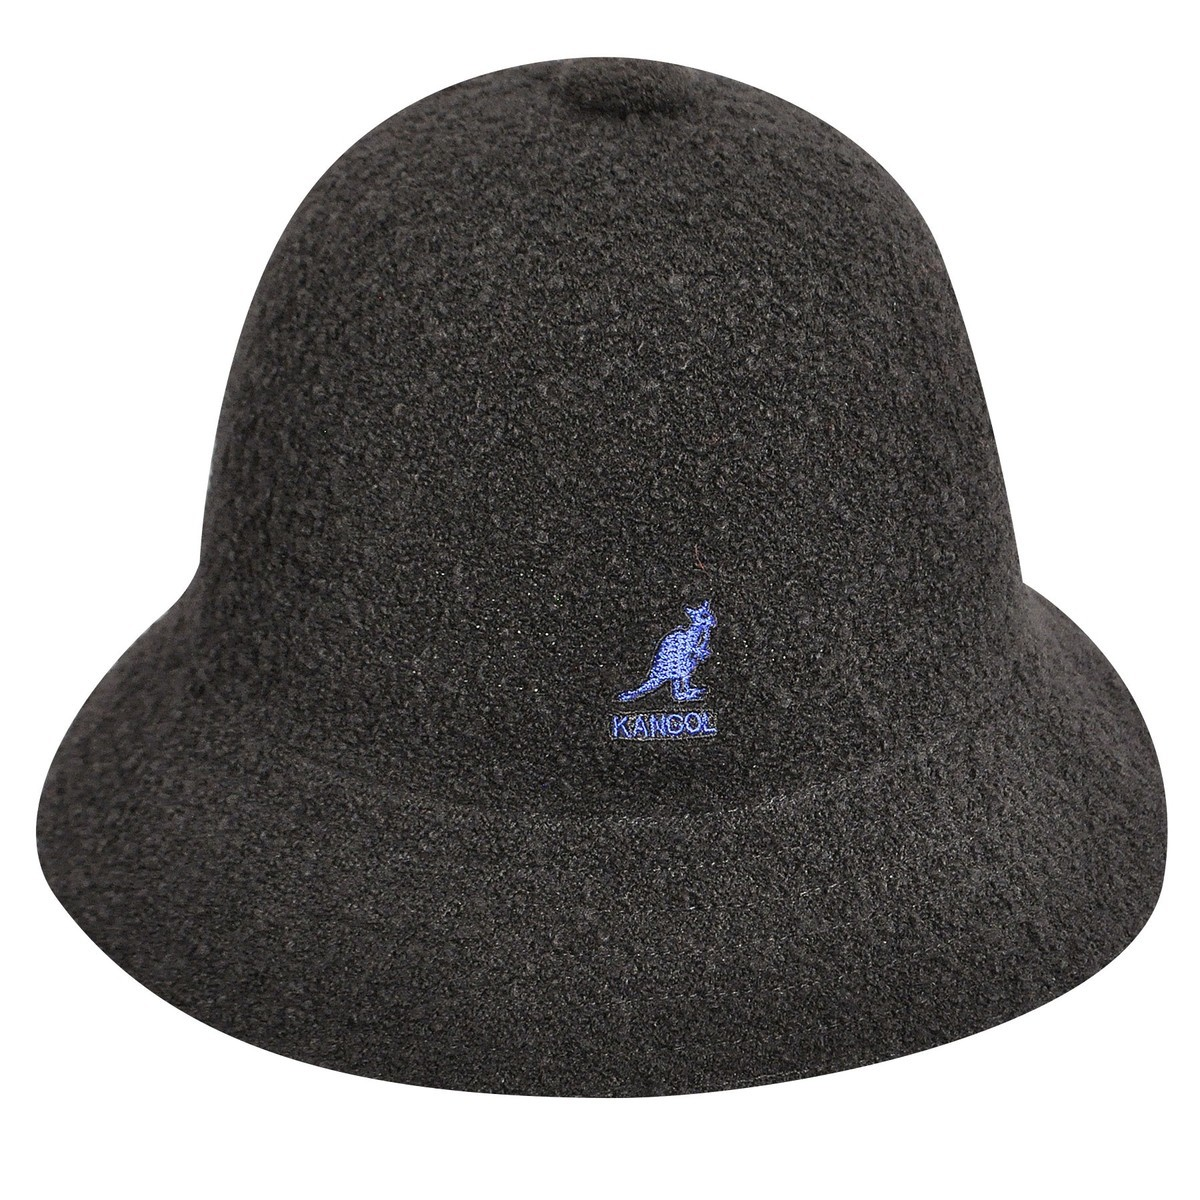 Kangol カンゴール Winter Bermuda Casual Black Ultra Blue バケットハット 帽子 Black Ultra Blue